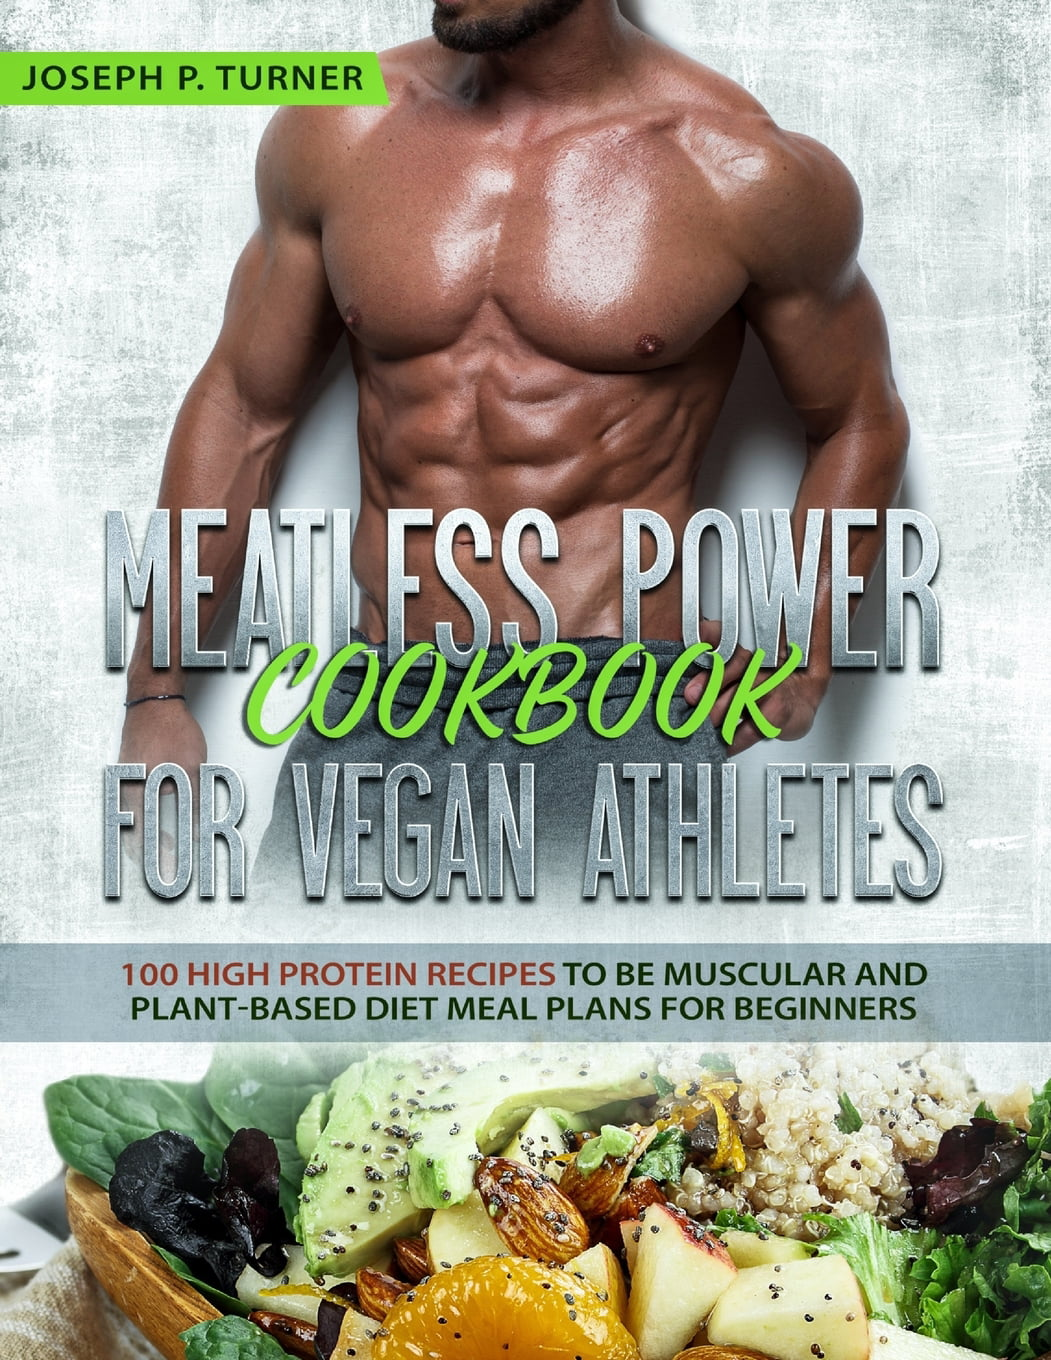 Meatless Power Cookbook For Vegan Athletes 100 High Protein Recipes To Be Muscular And Plant Based Diet Meal Plans For Beginners With Pictures Walmart Com Walmart Com